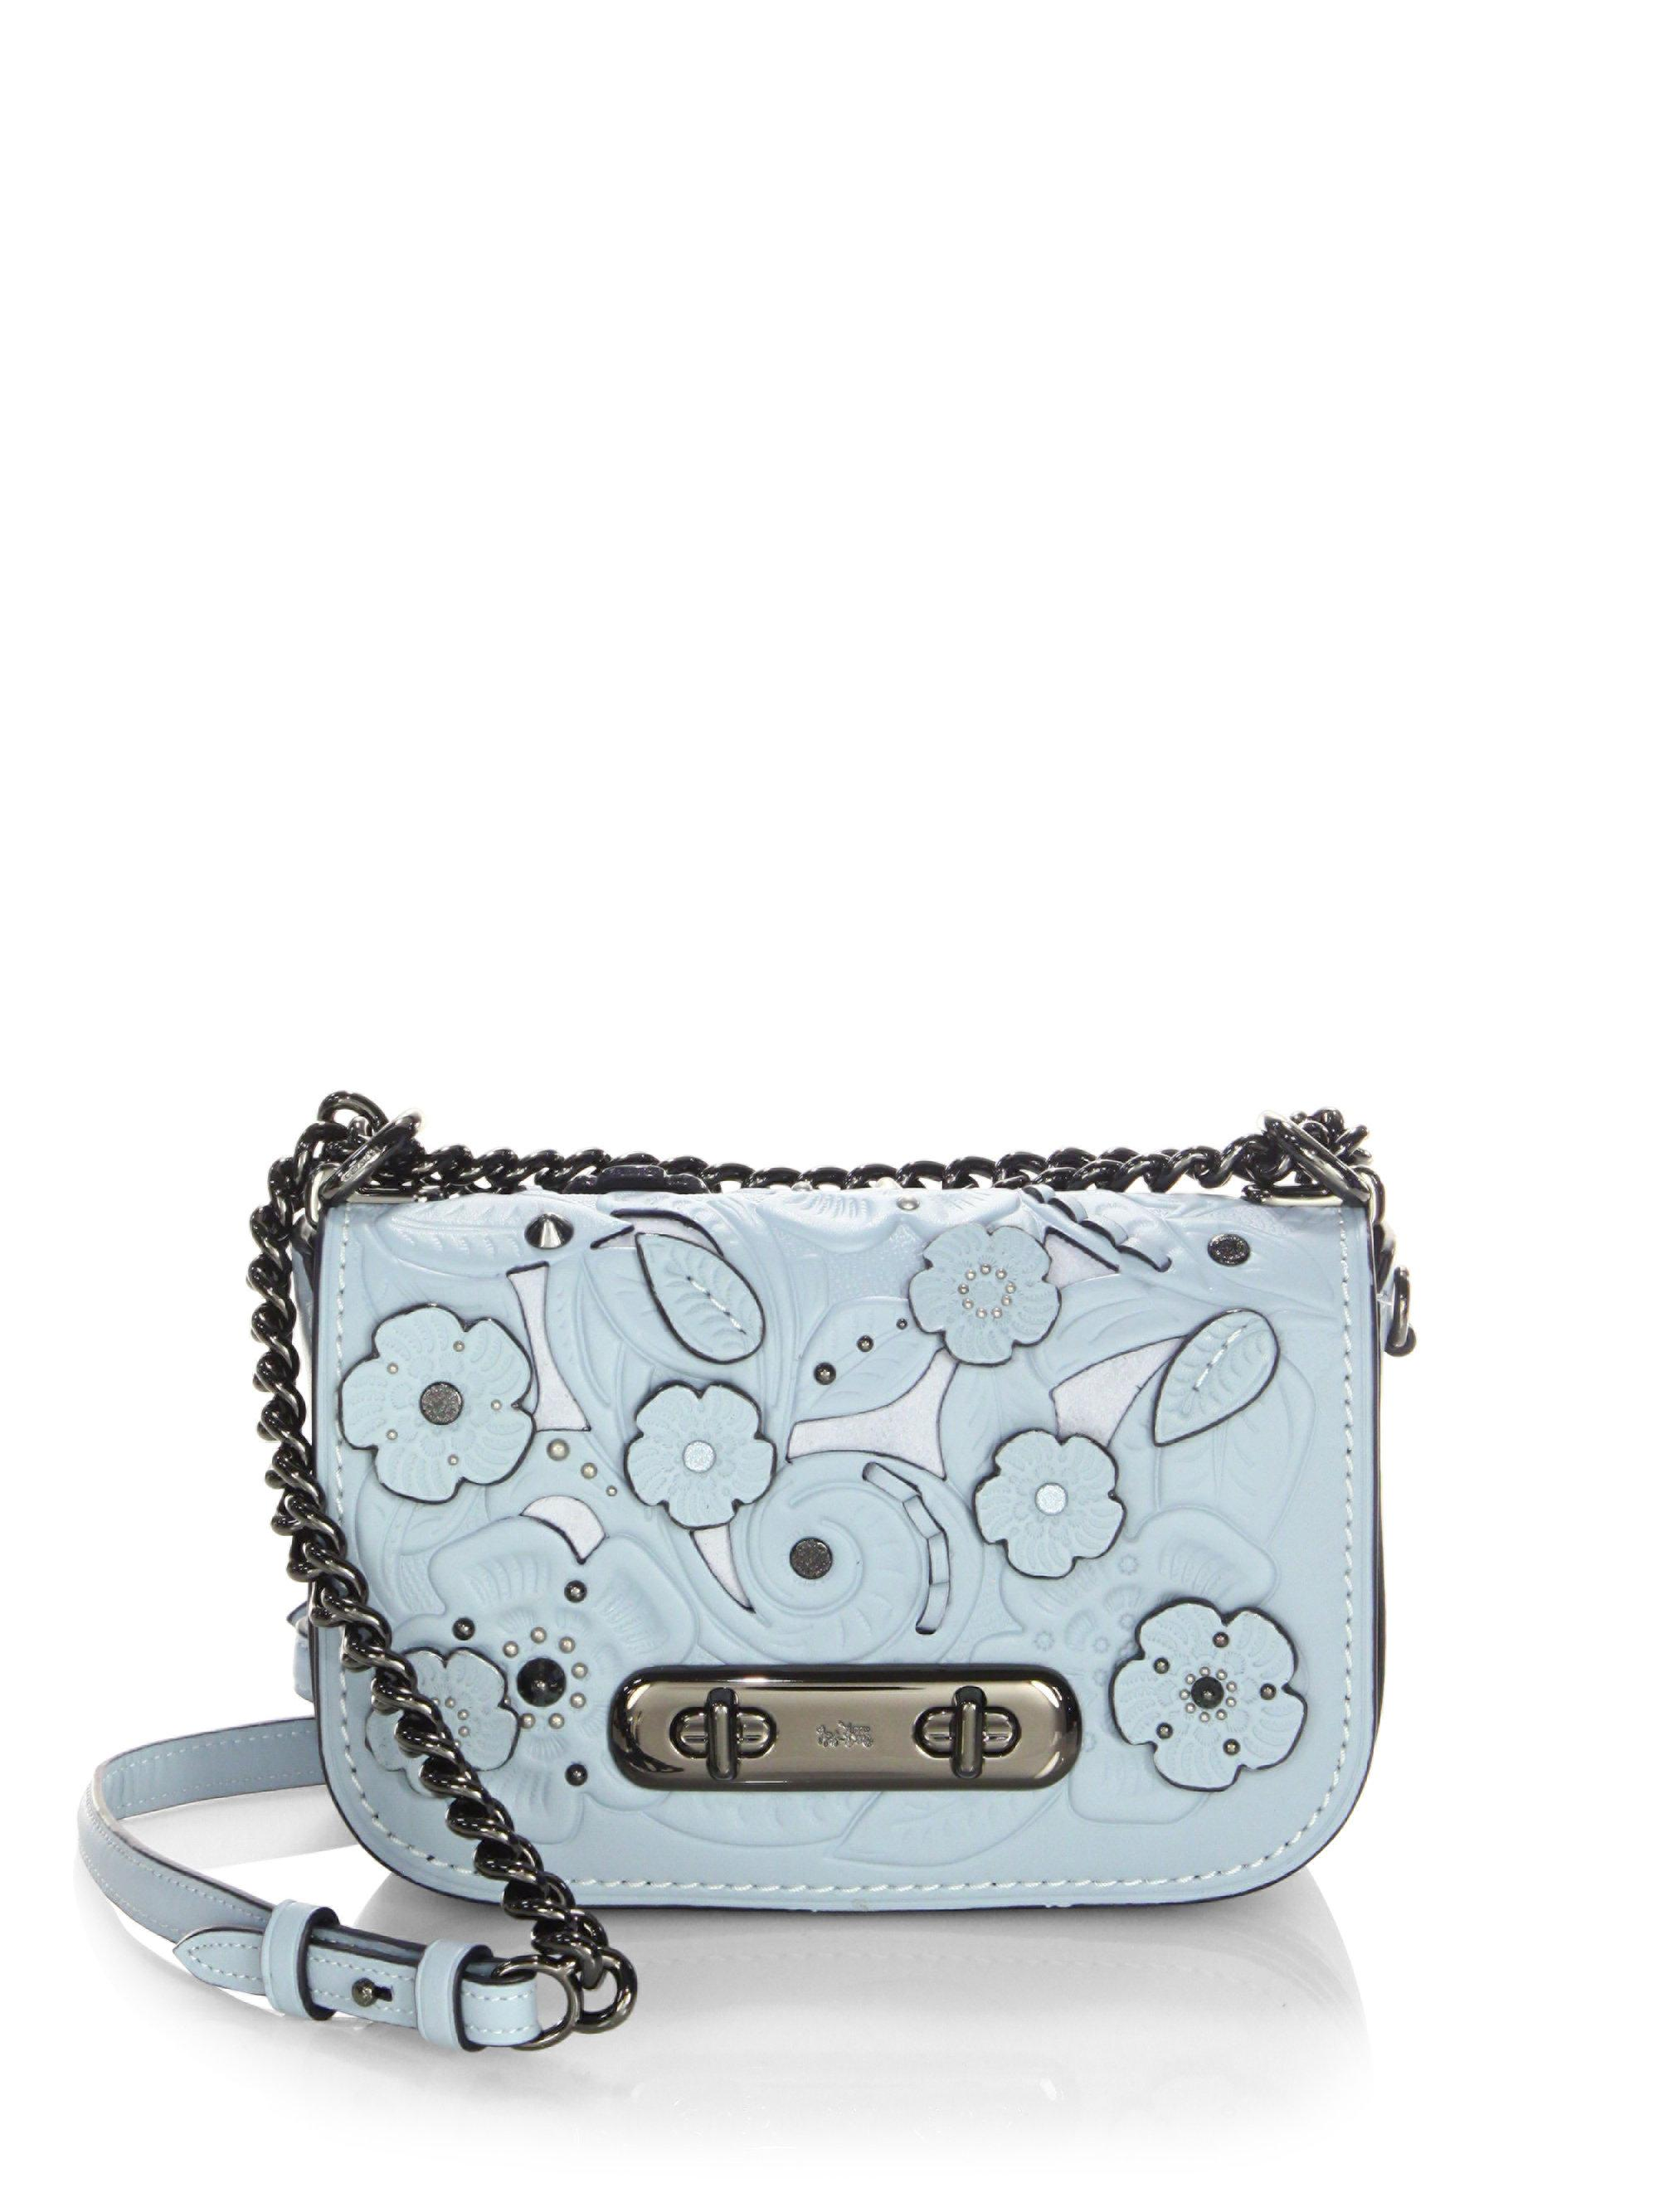 7c3d26d4 COACH Blue Swagger Flower Leather Crossbody Bag